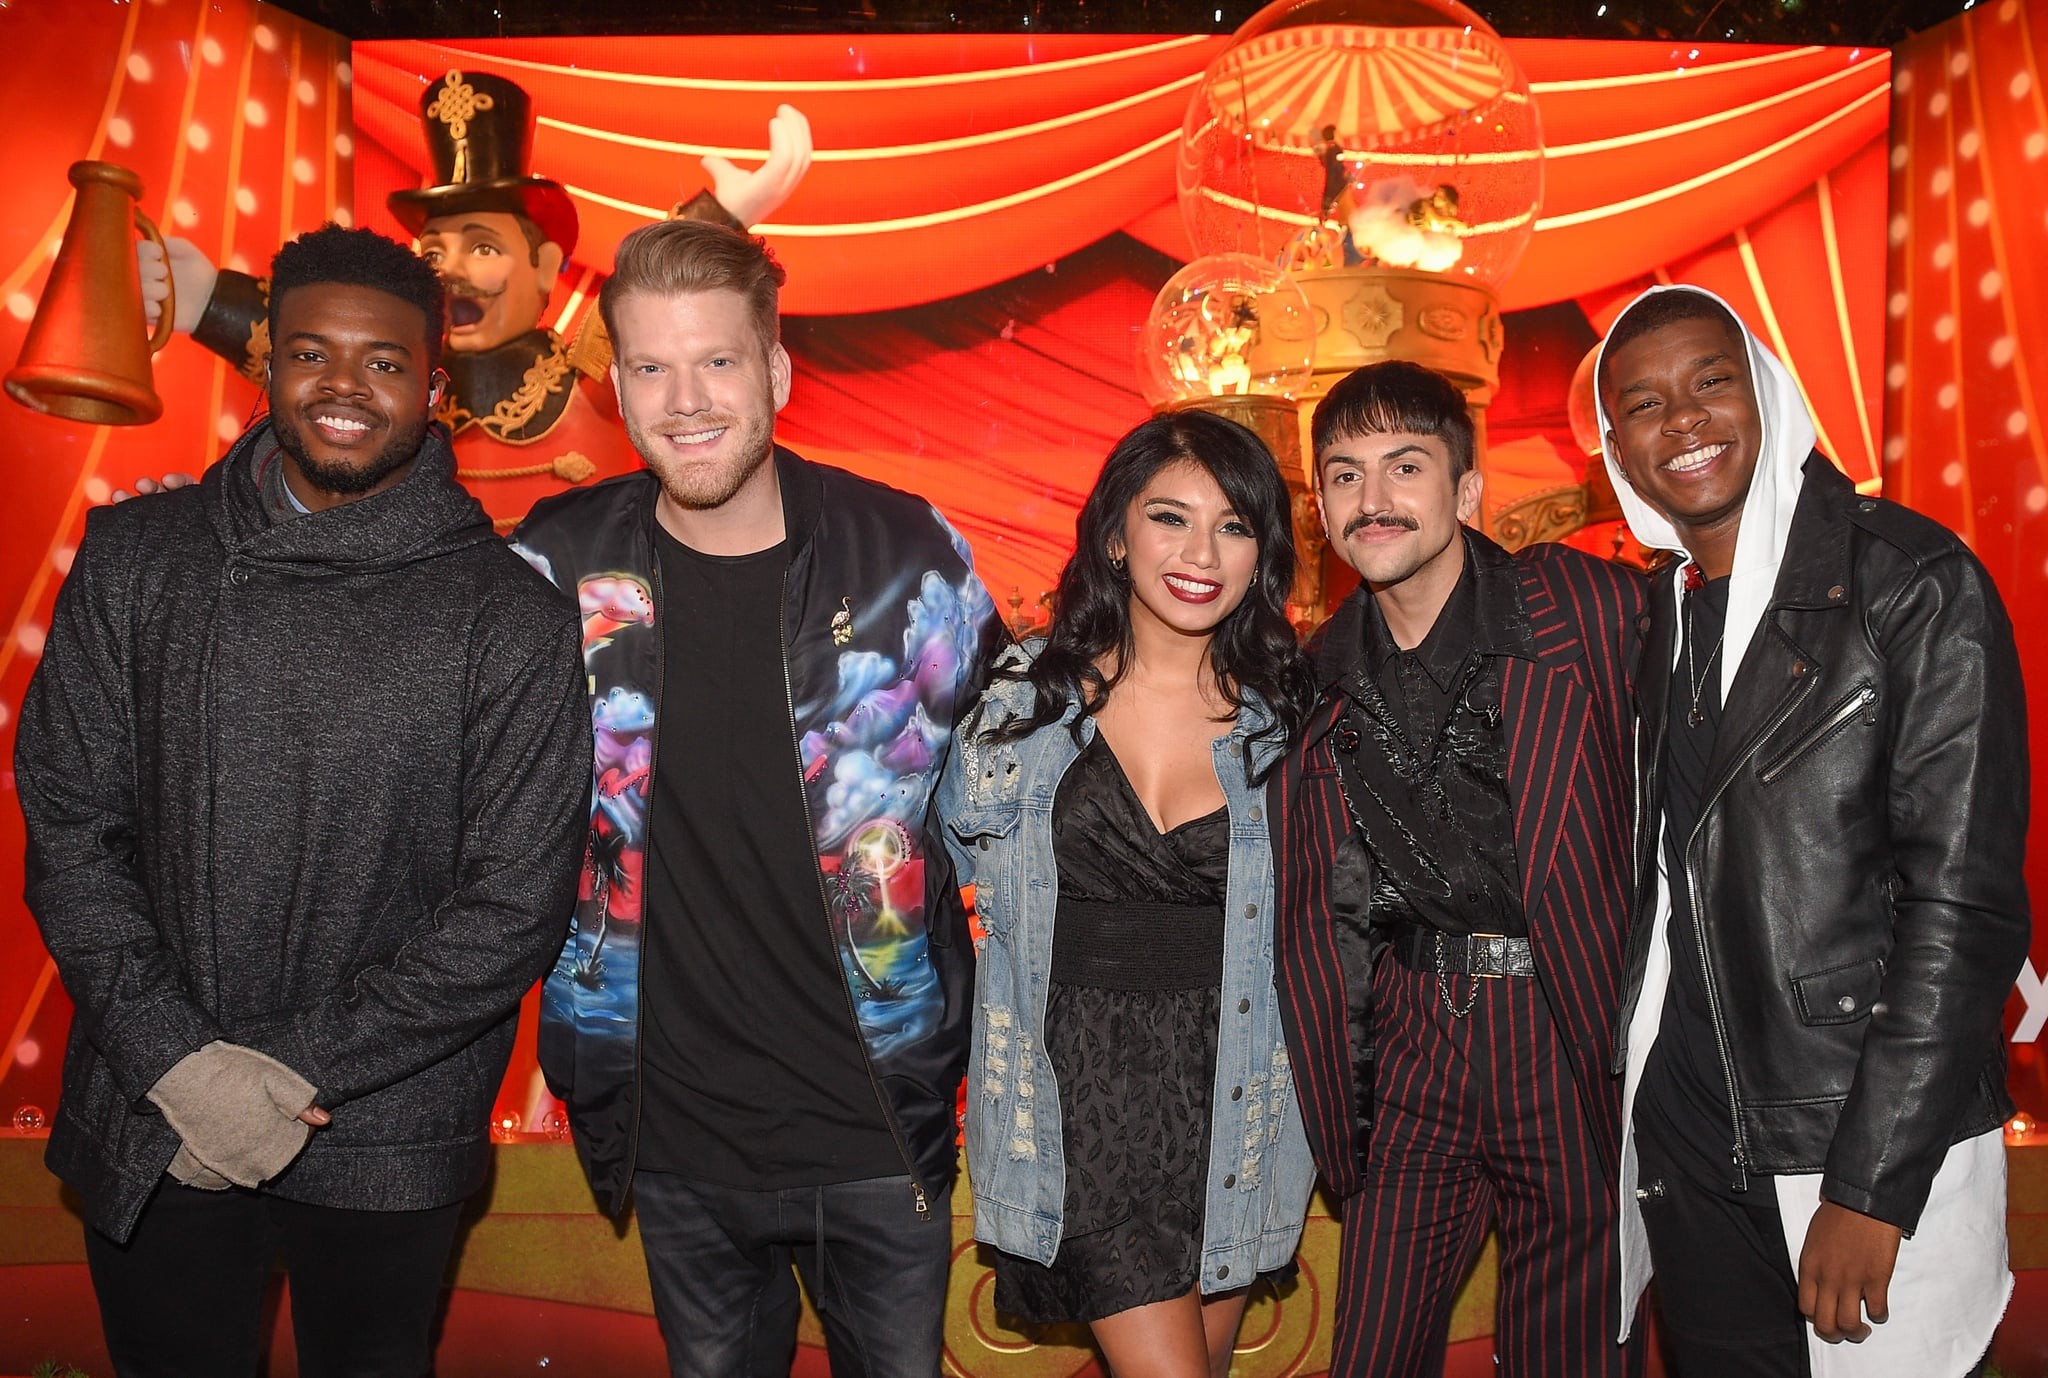 TORONTO, ON - NOVEMBER 02: L-R Kevin Olusola, Scott Hoying, Kirstin Maldonado, Mitch Grassi and Matt Sallee attend the Hudson's Bay And Saks Fifth Avenue Kick Off The Holidays With Pentatonix at Hudson's Bay on November 2, 2017 in Toronto, Canada.  (Photo by GP Images/WireImage)